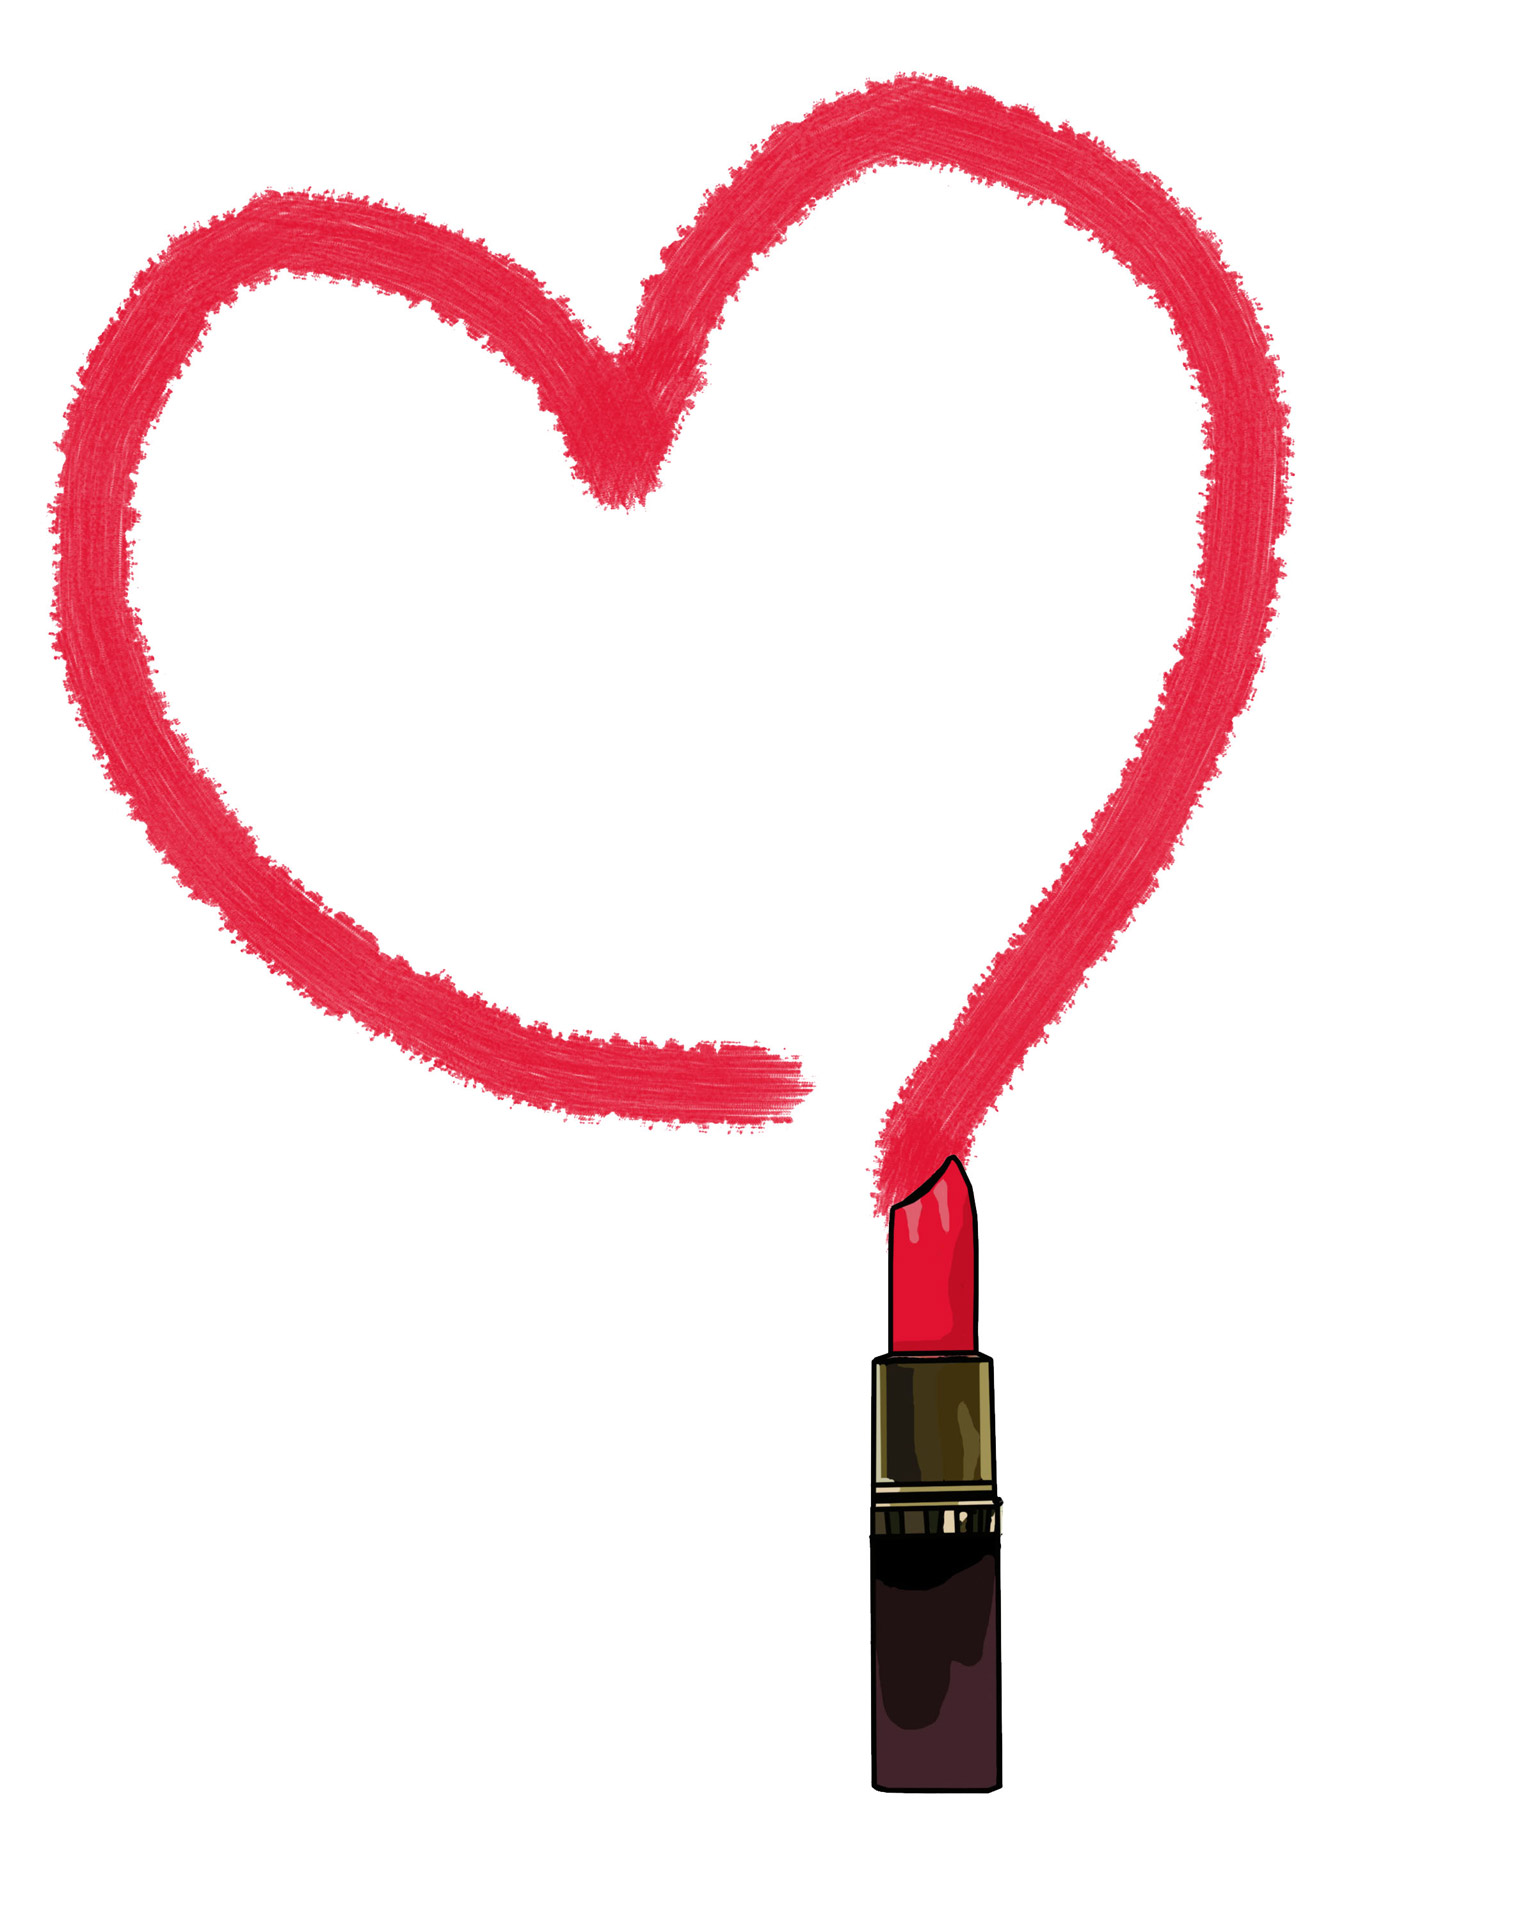 Drawn heart lipstick Free Drawn Domain Public Lipstick